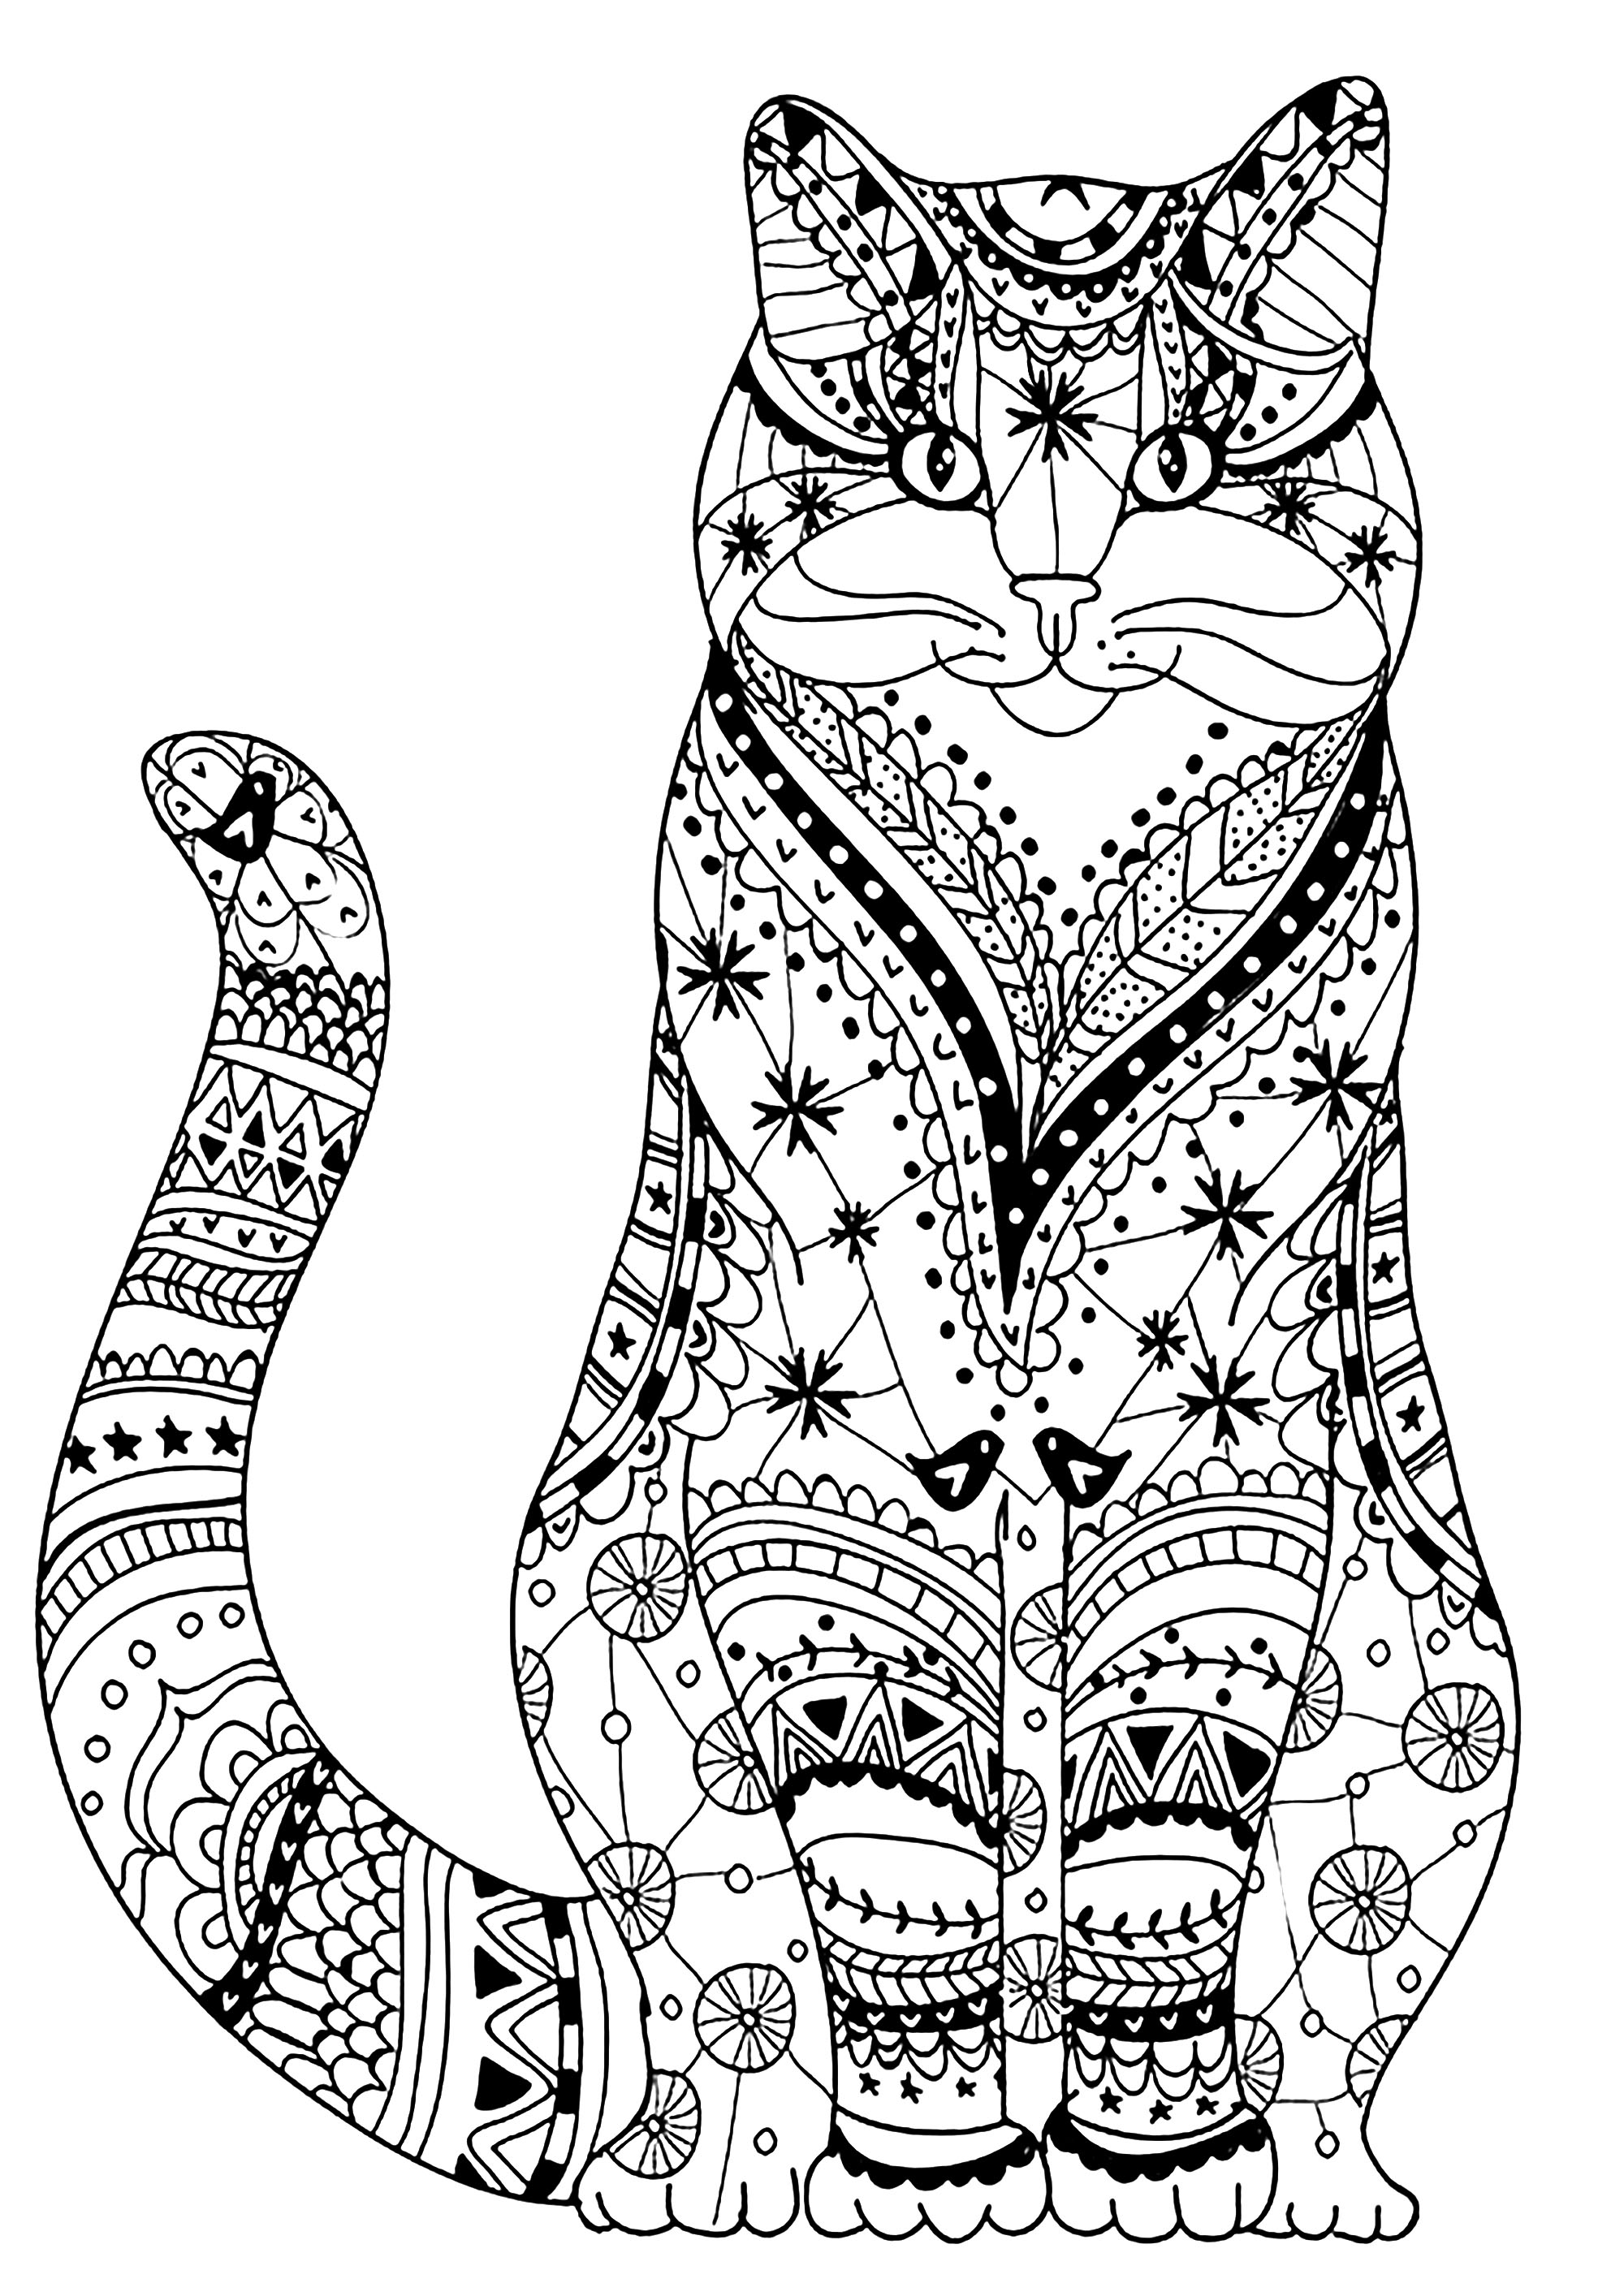 cat colouring pages cat to print for free rainbow cat cats kids coloring pages pages cat colouring